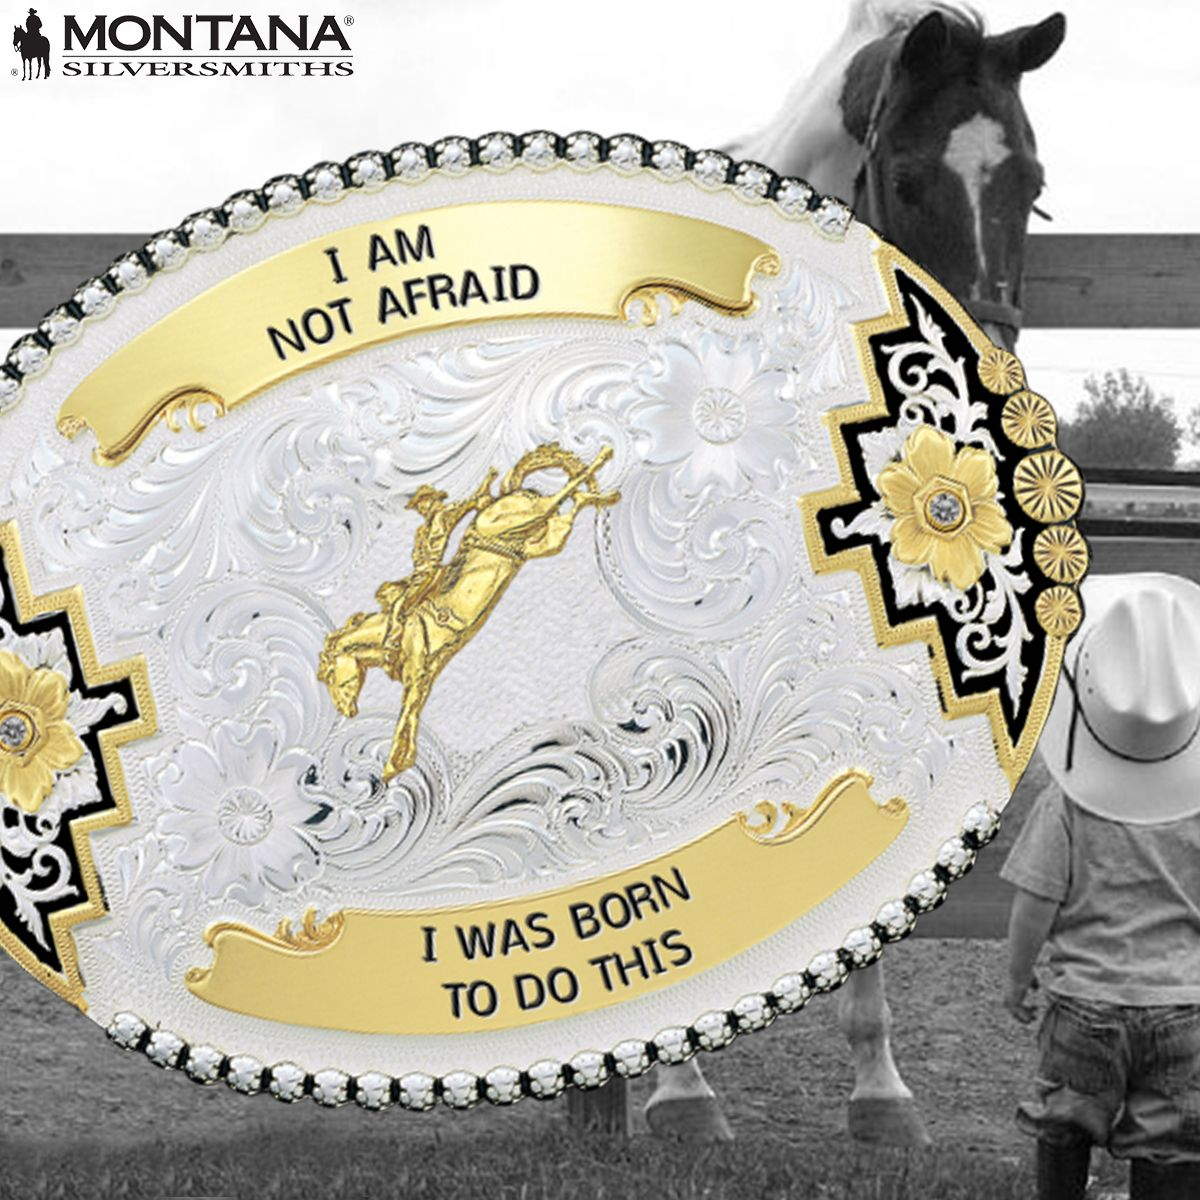 I am not afraid. I was born to do this. #motivationalmonday Find your motivation here; http://www.montanasilversmiths.com/custom-buckles